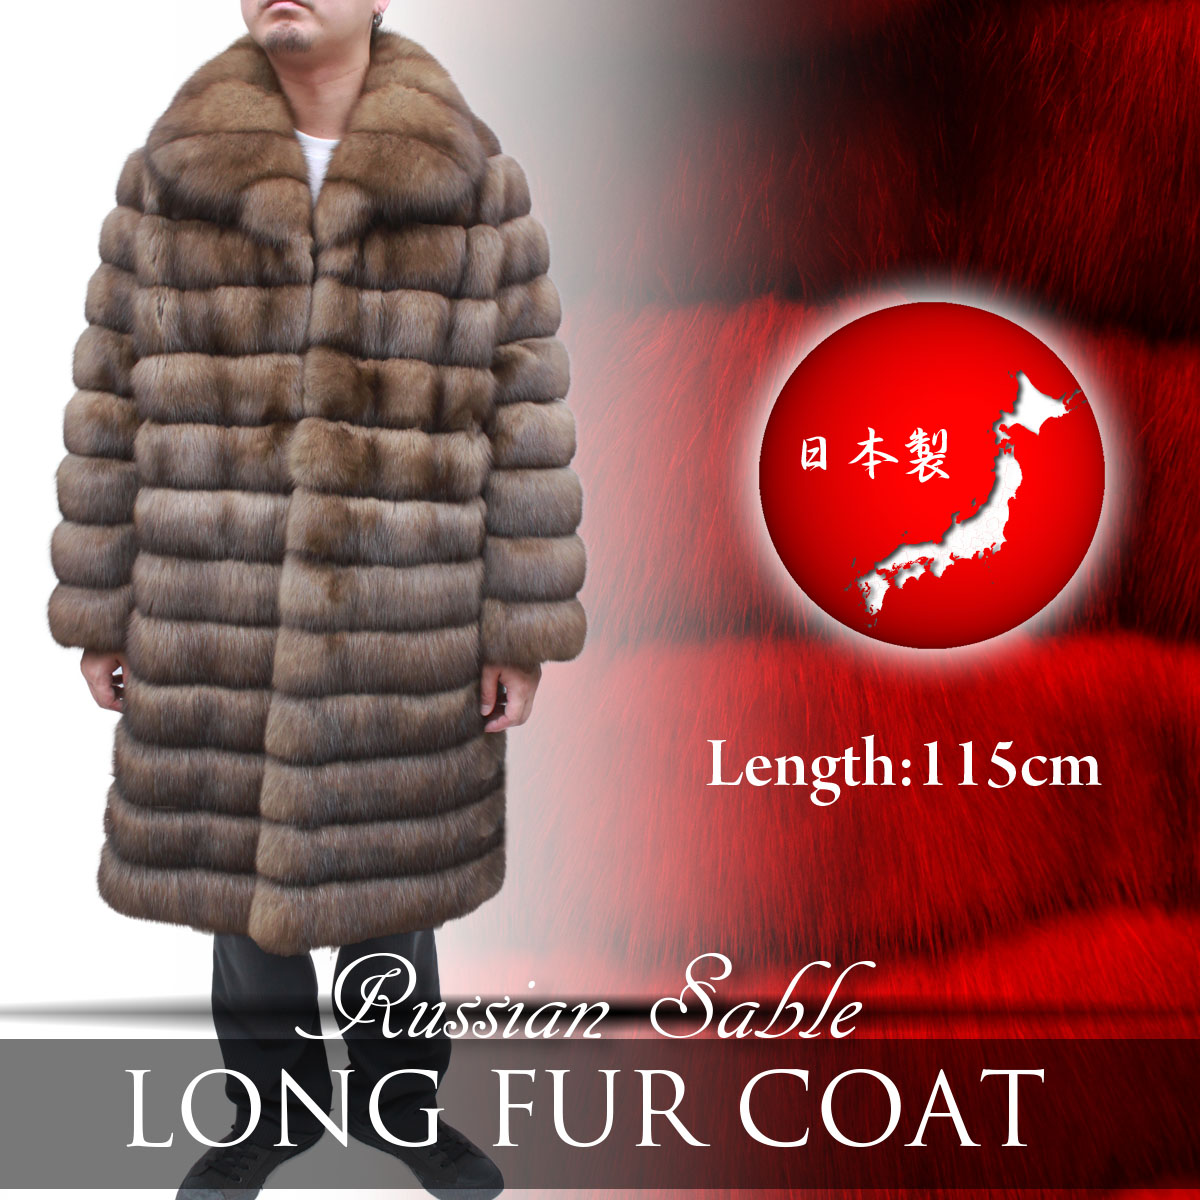 Russian Sable mens fur coat made in Japan (115 cm) 8150 natural fur, luxury furs, men's furs, Sable fur